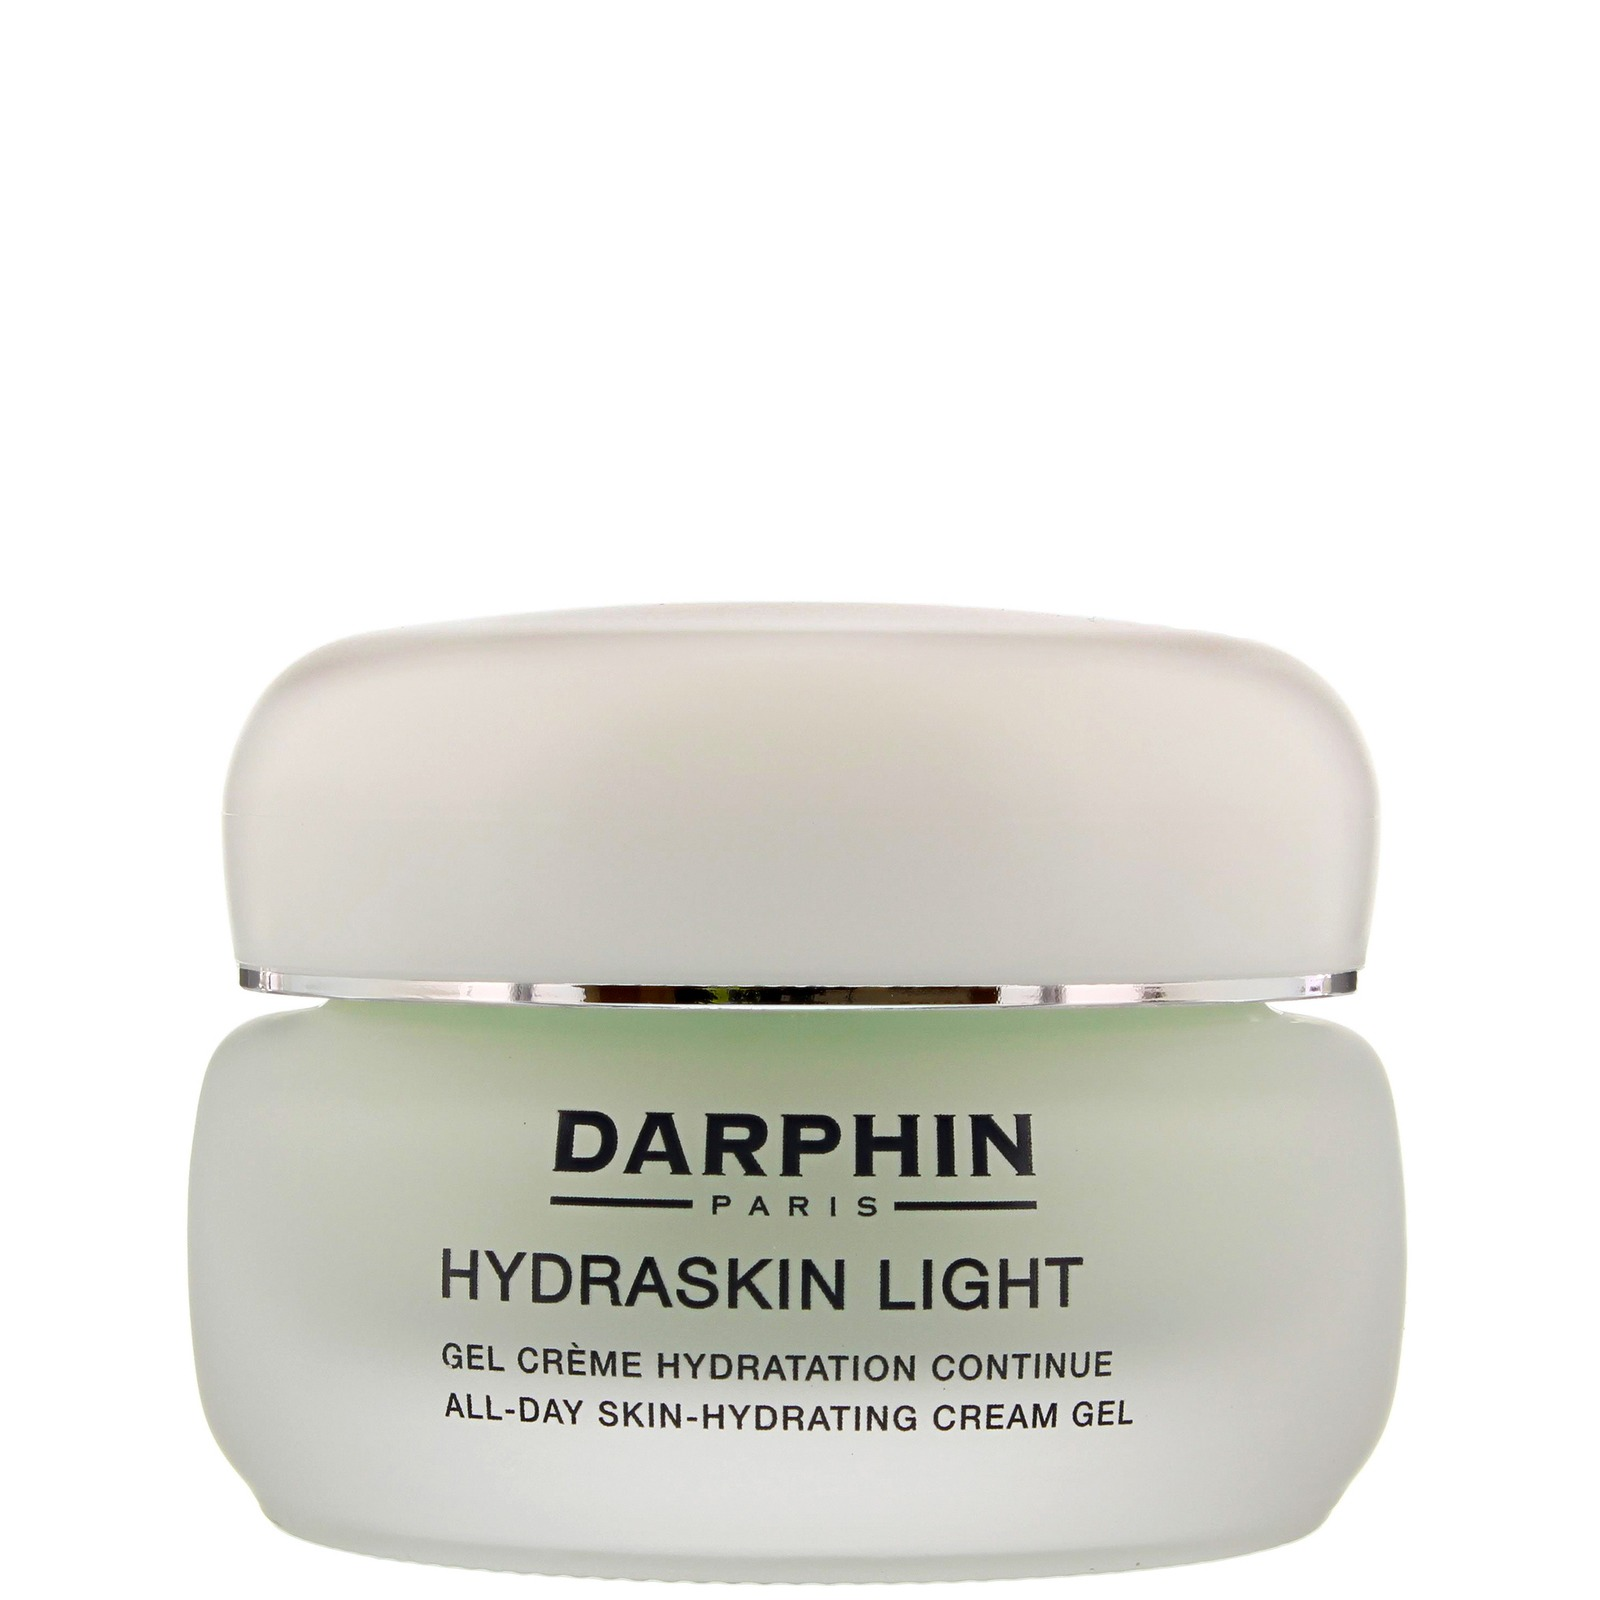 Darphin Moisturisers Hydraskin Light Gel Cream for Normal to Combination Skin 50ml